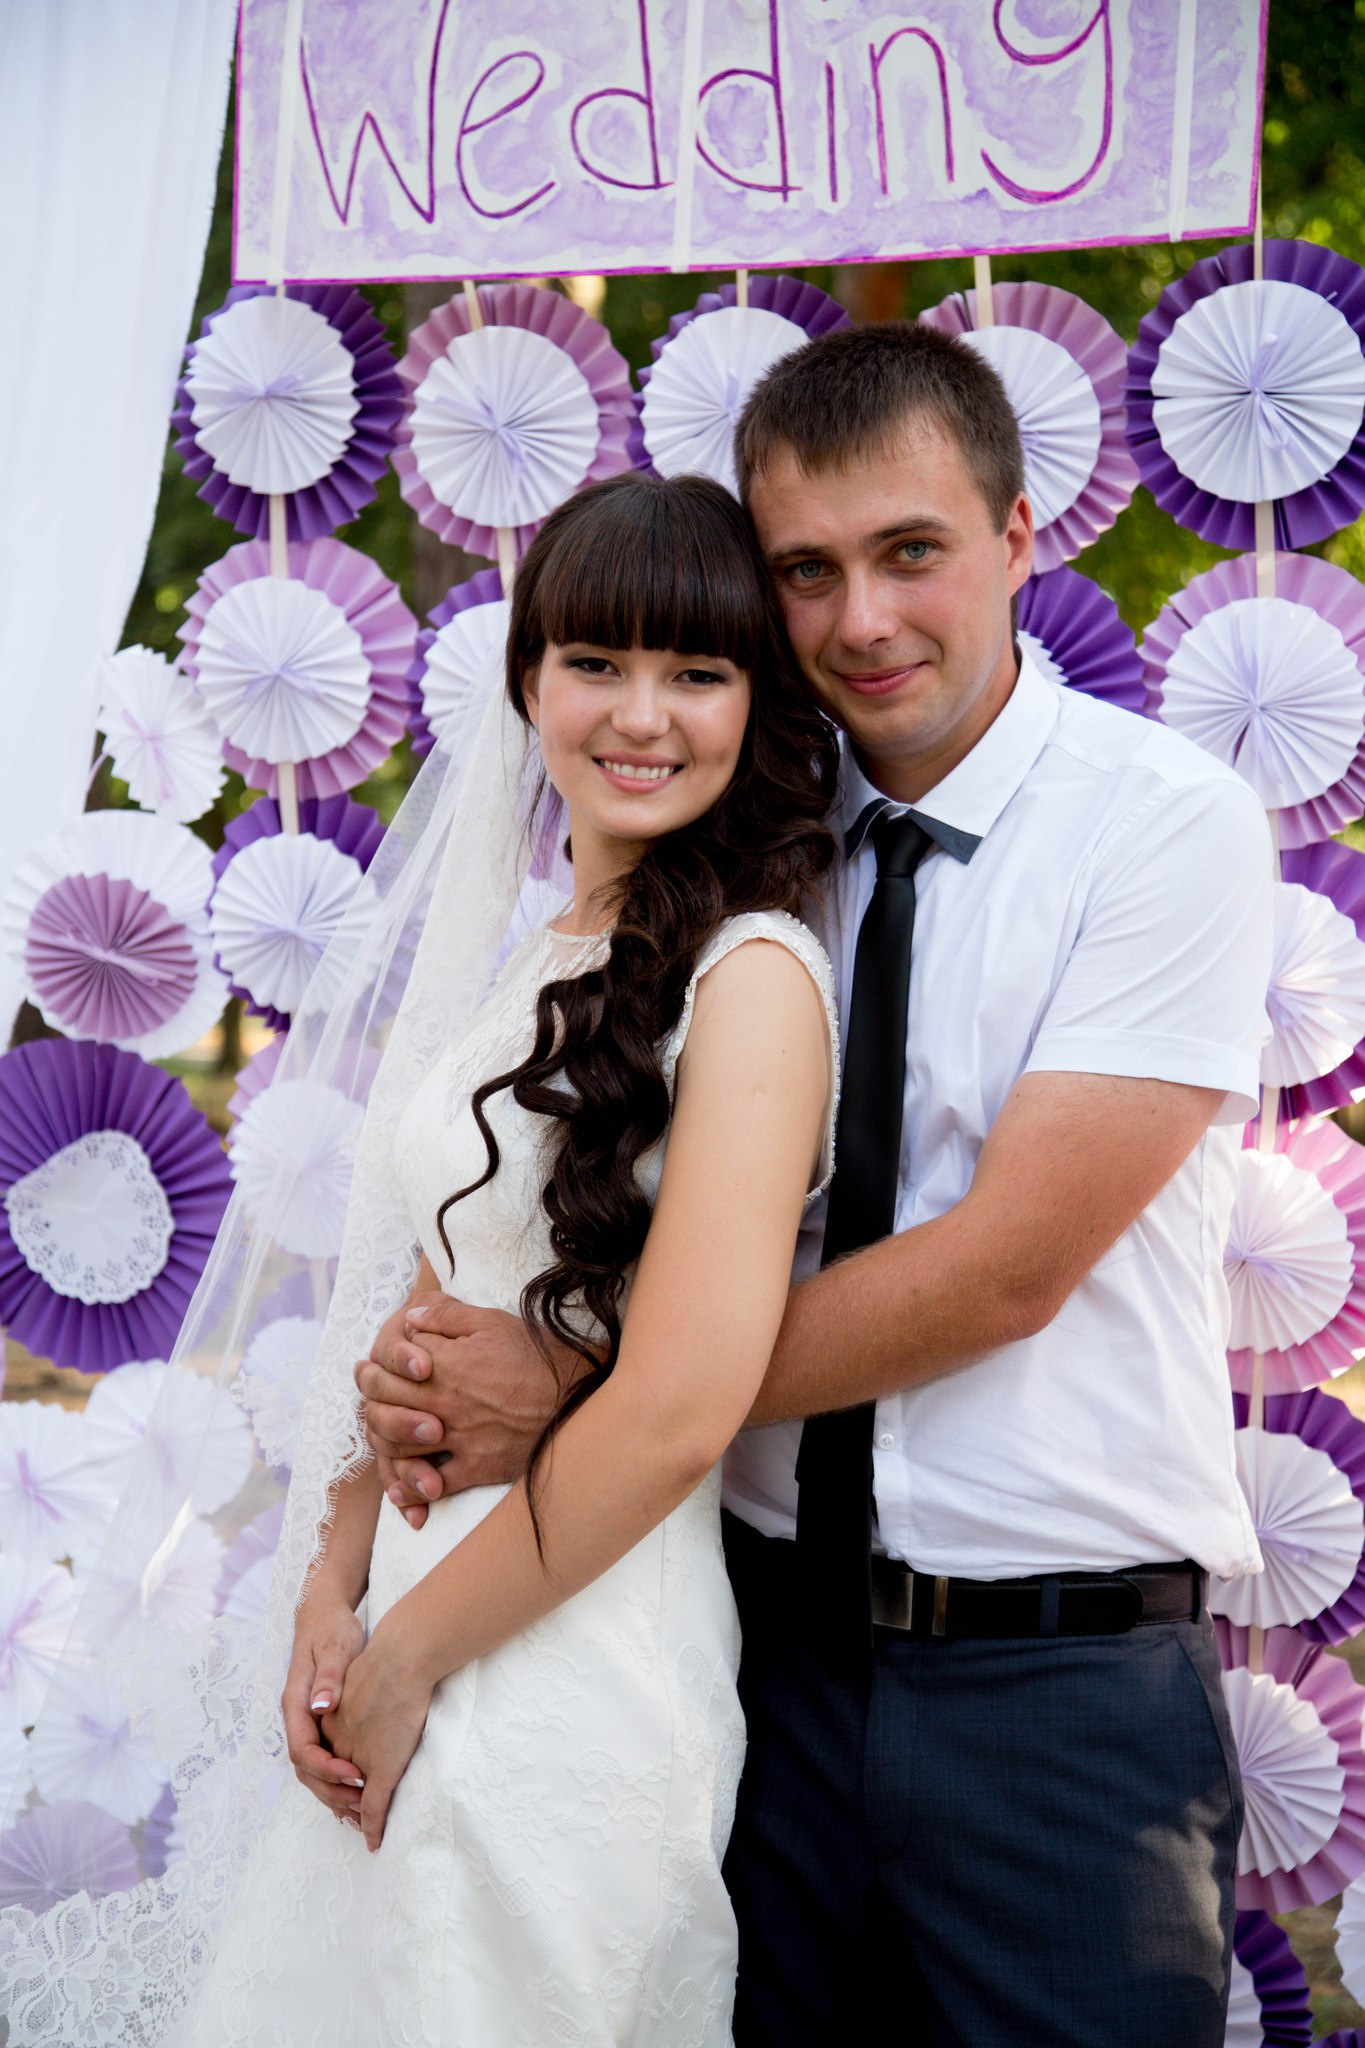 August Wedding - hot wedding27